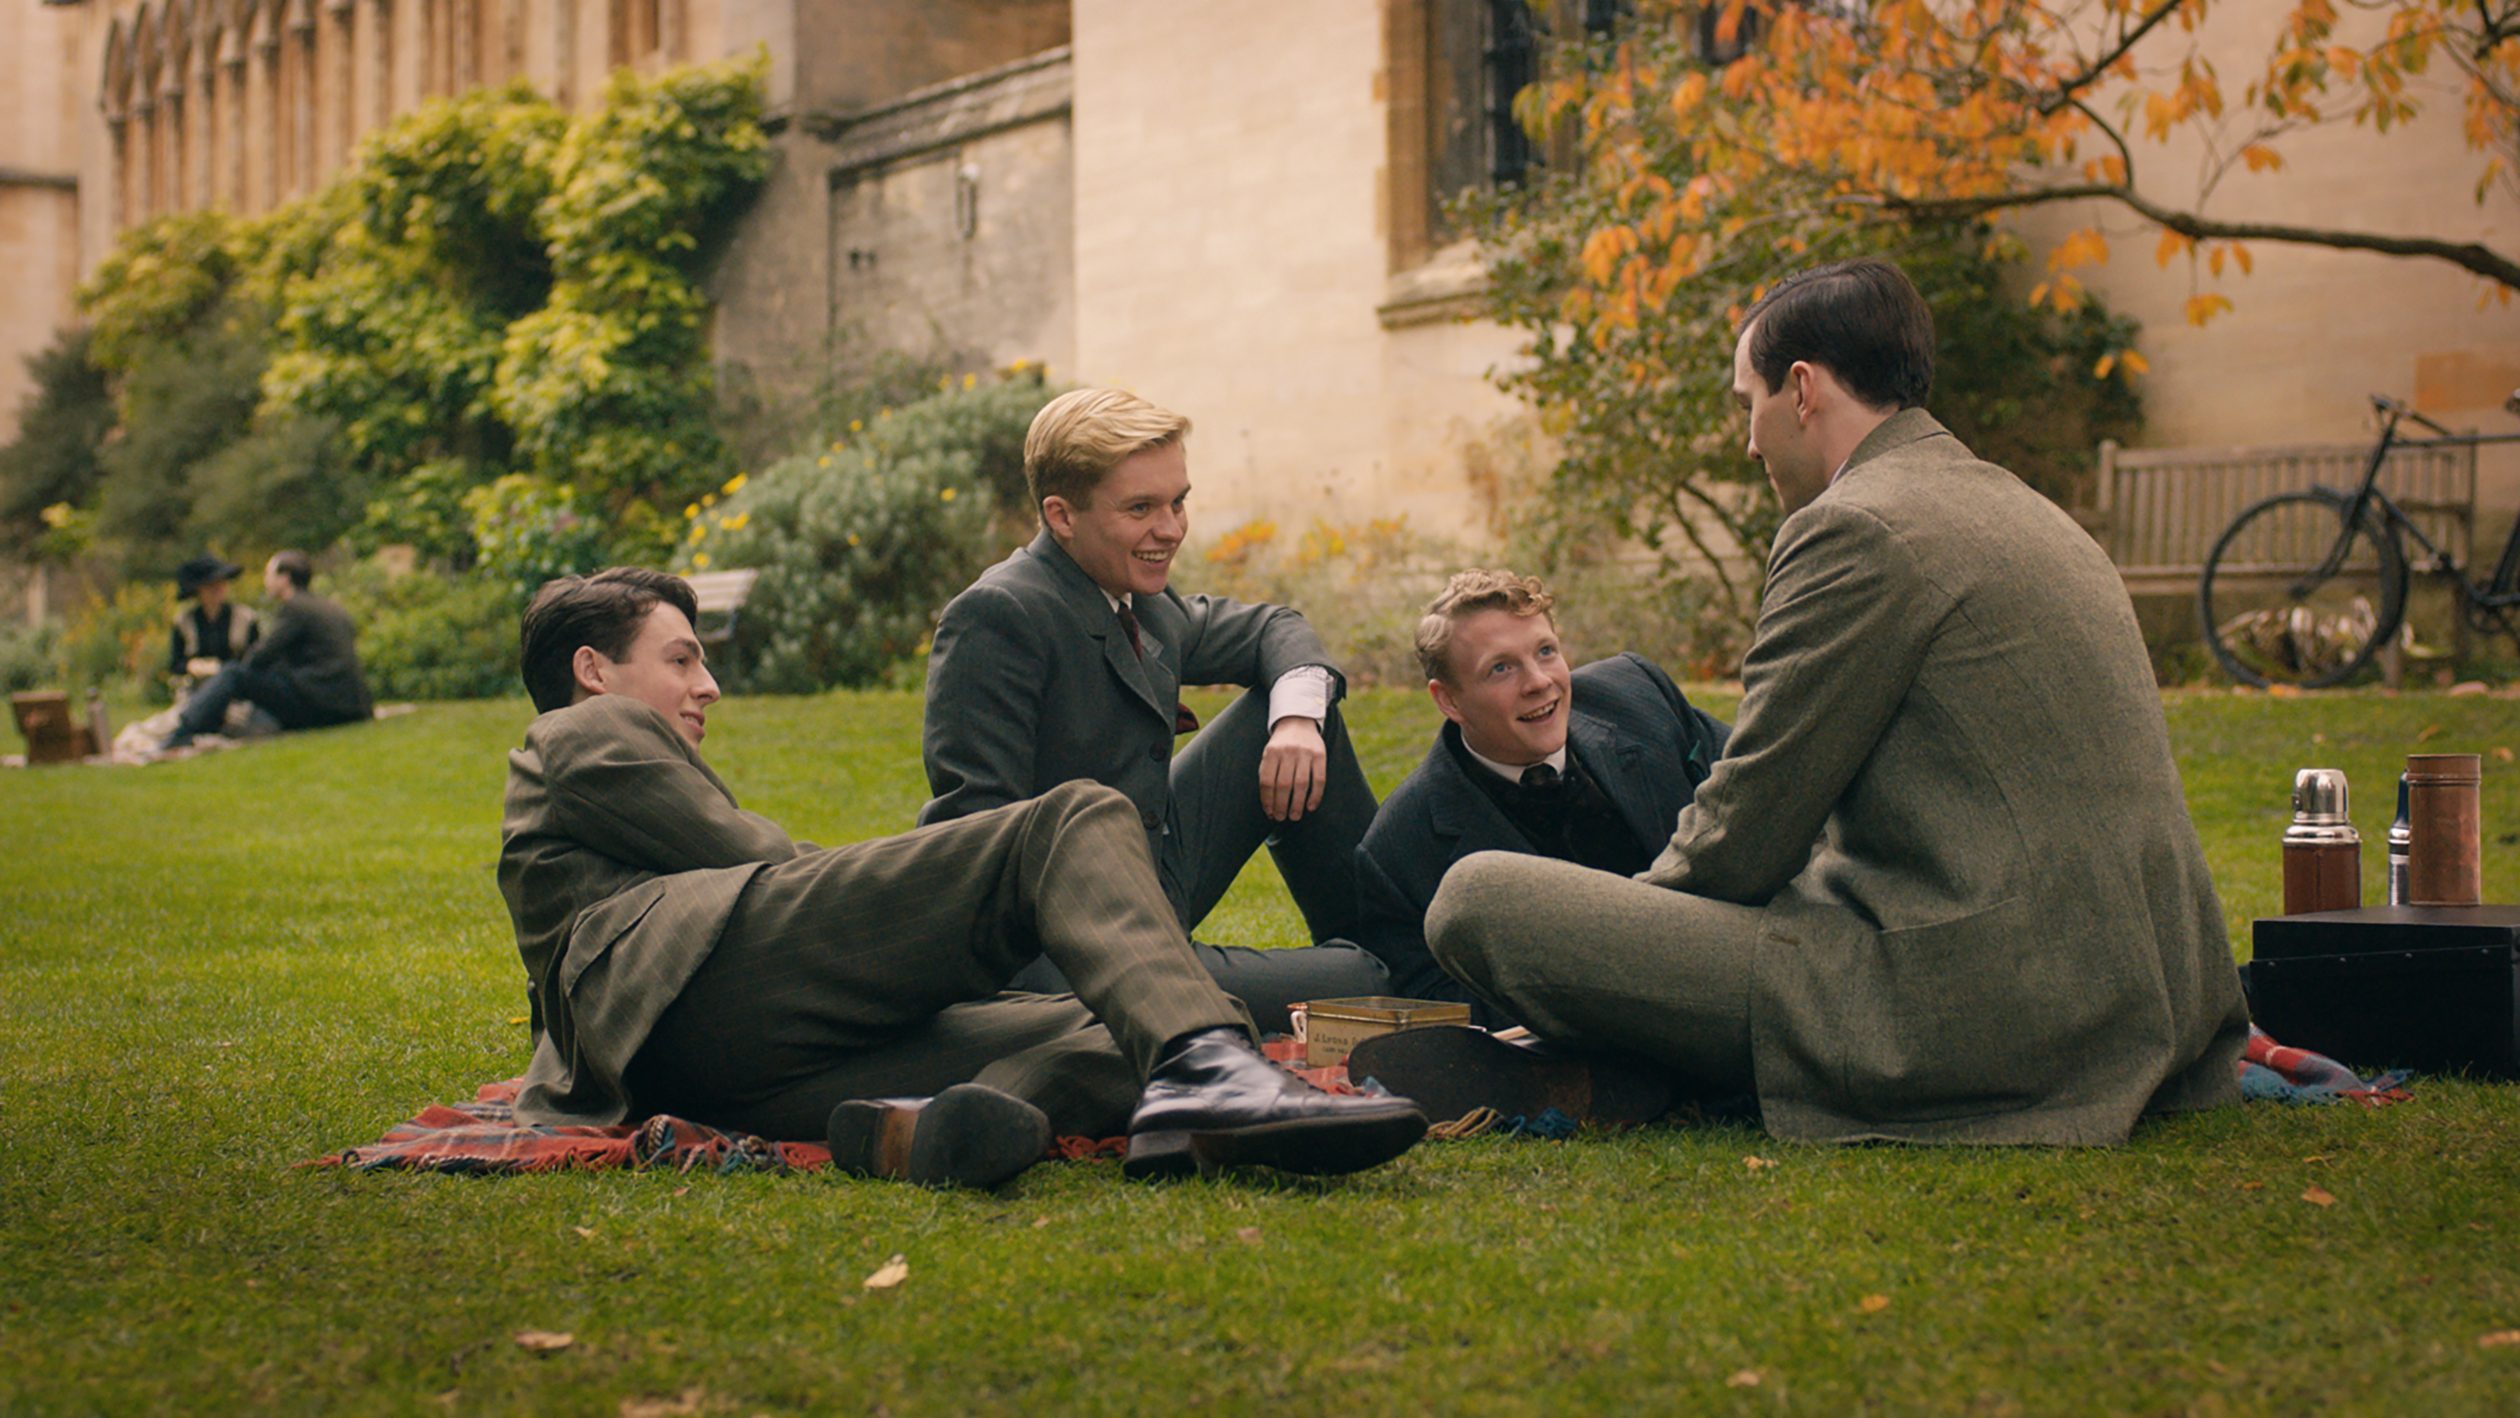 (From L-R): Anthony Boyle, Tom Glynn-Carney, Patrick Gibson and Nicholas Hoult in the film 'Tolkien.' © 2019 Twentieth Century Fox Film Corporation All Rights Reserved